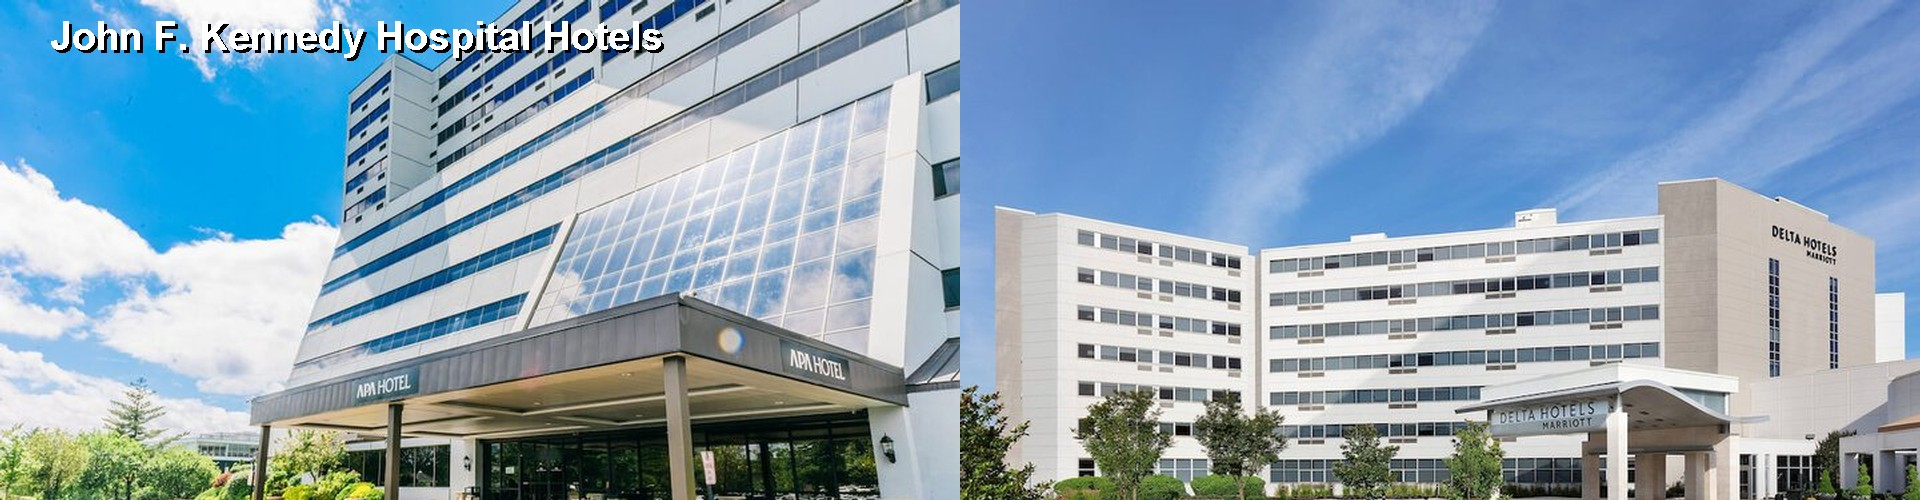 5 Best Hotels near John F. Kennedy Hospital